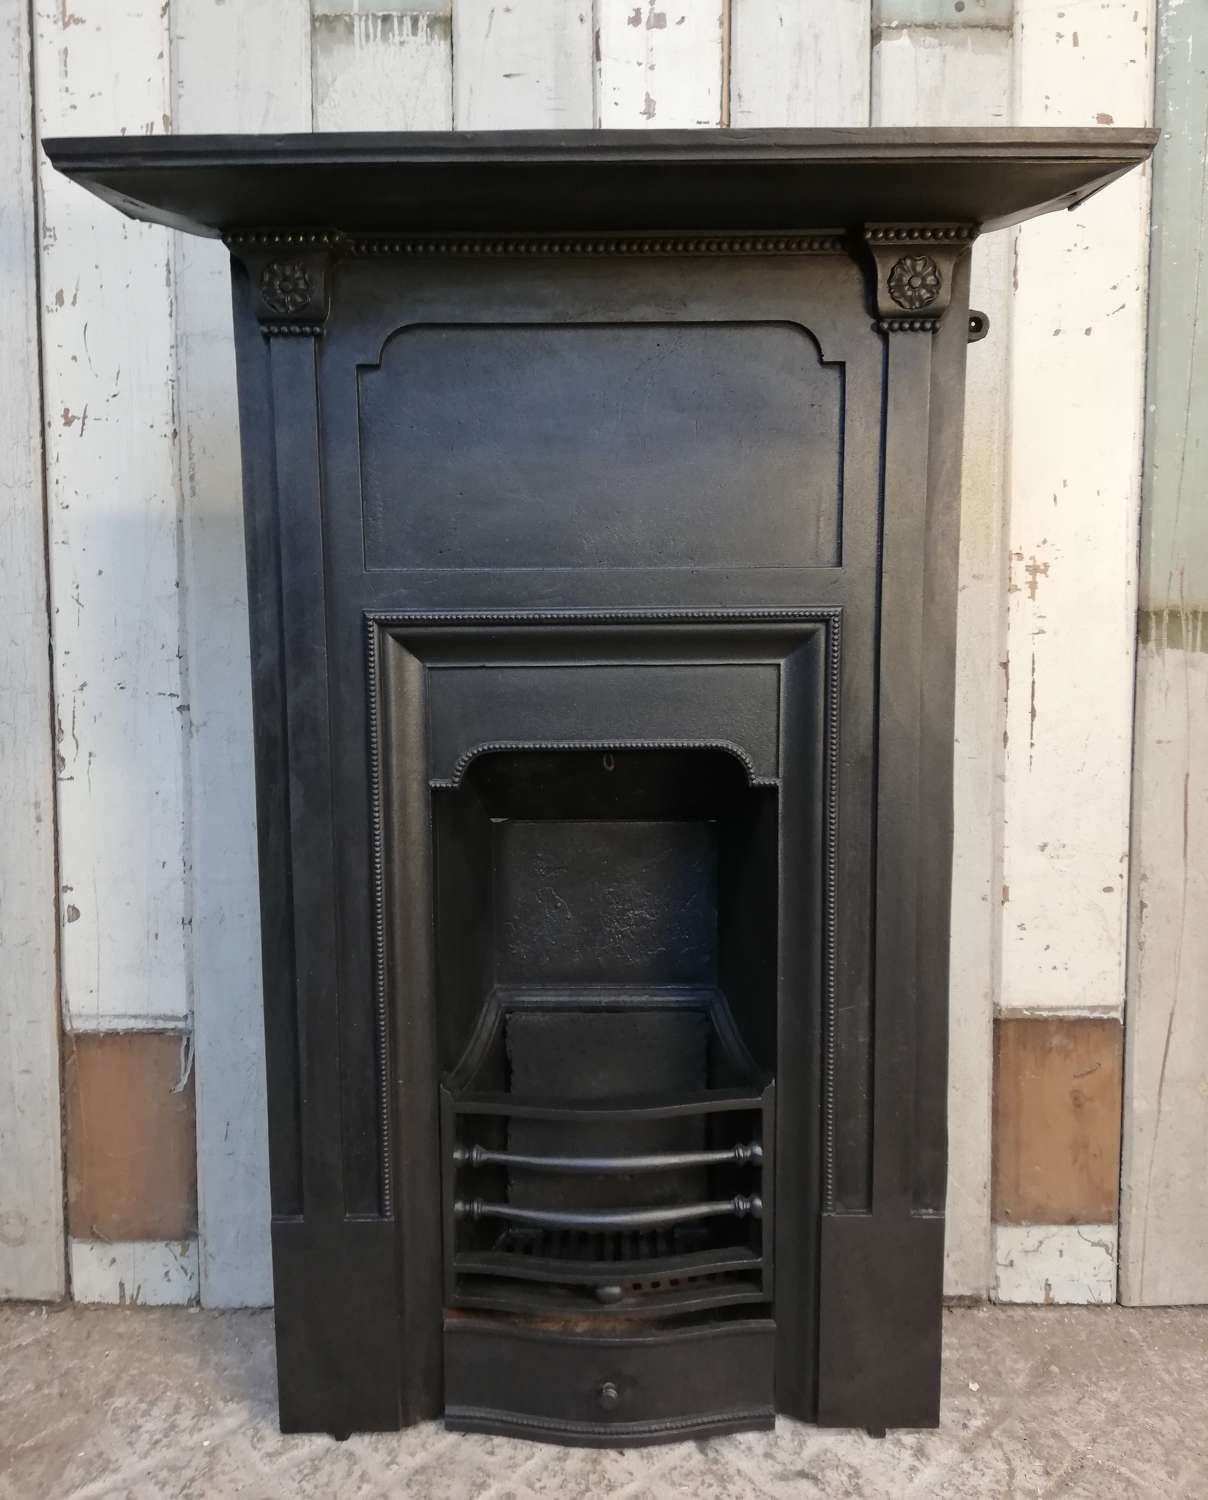 FC0072 AN EARLY VICTORIAN CAST IRON COMBINATION BEDROOM FIRE